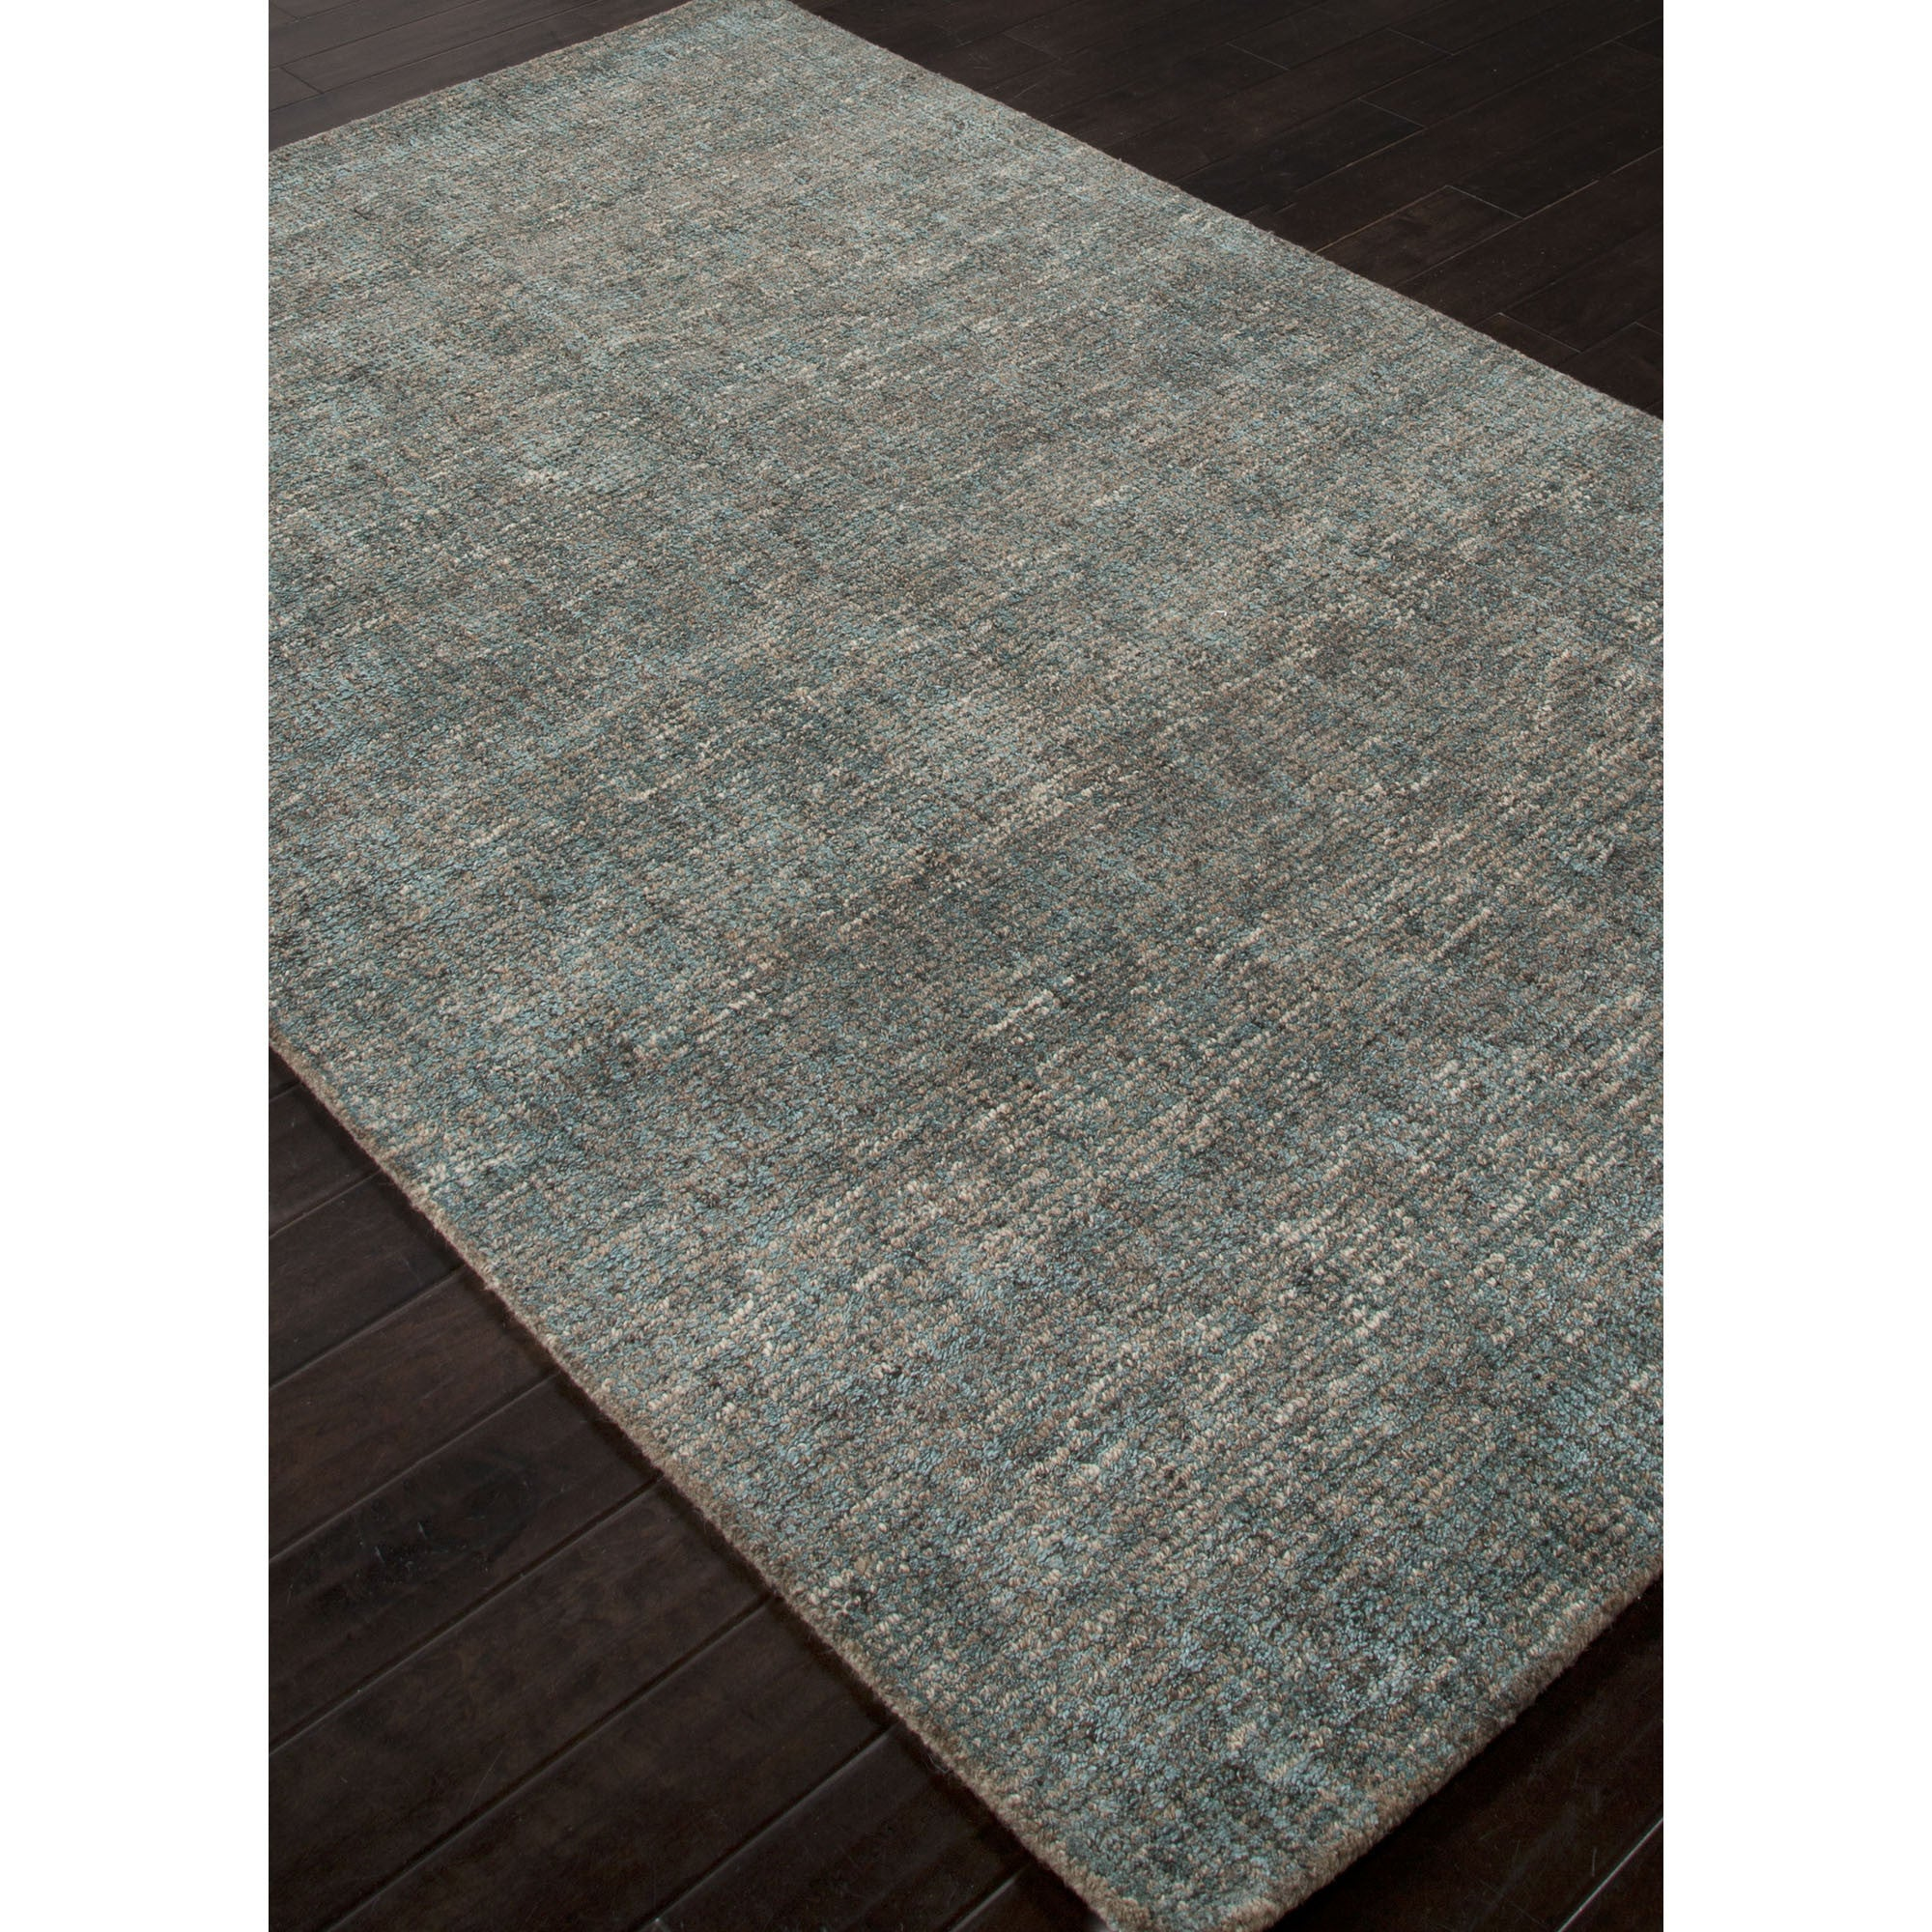 Jaipur Rugs Solid Solid Pattern Blue Gray Wool And Art